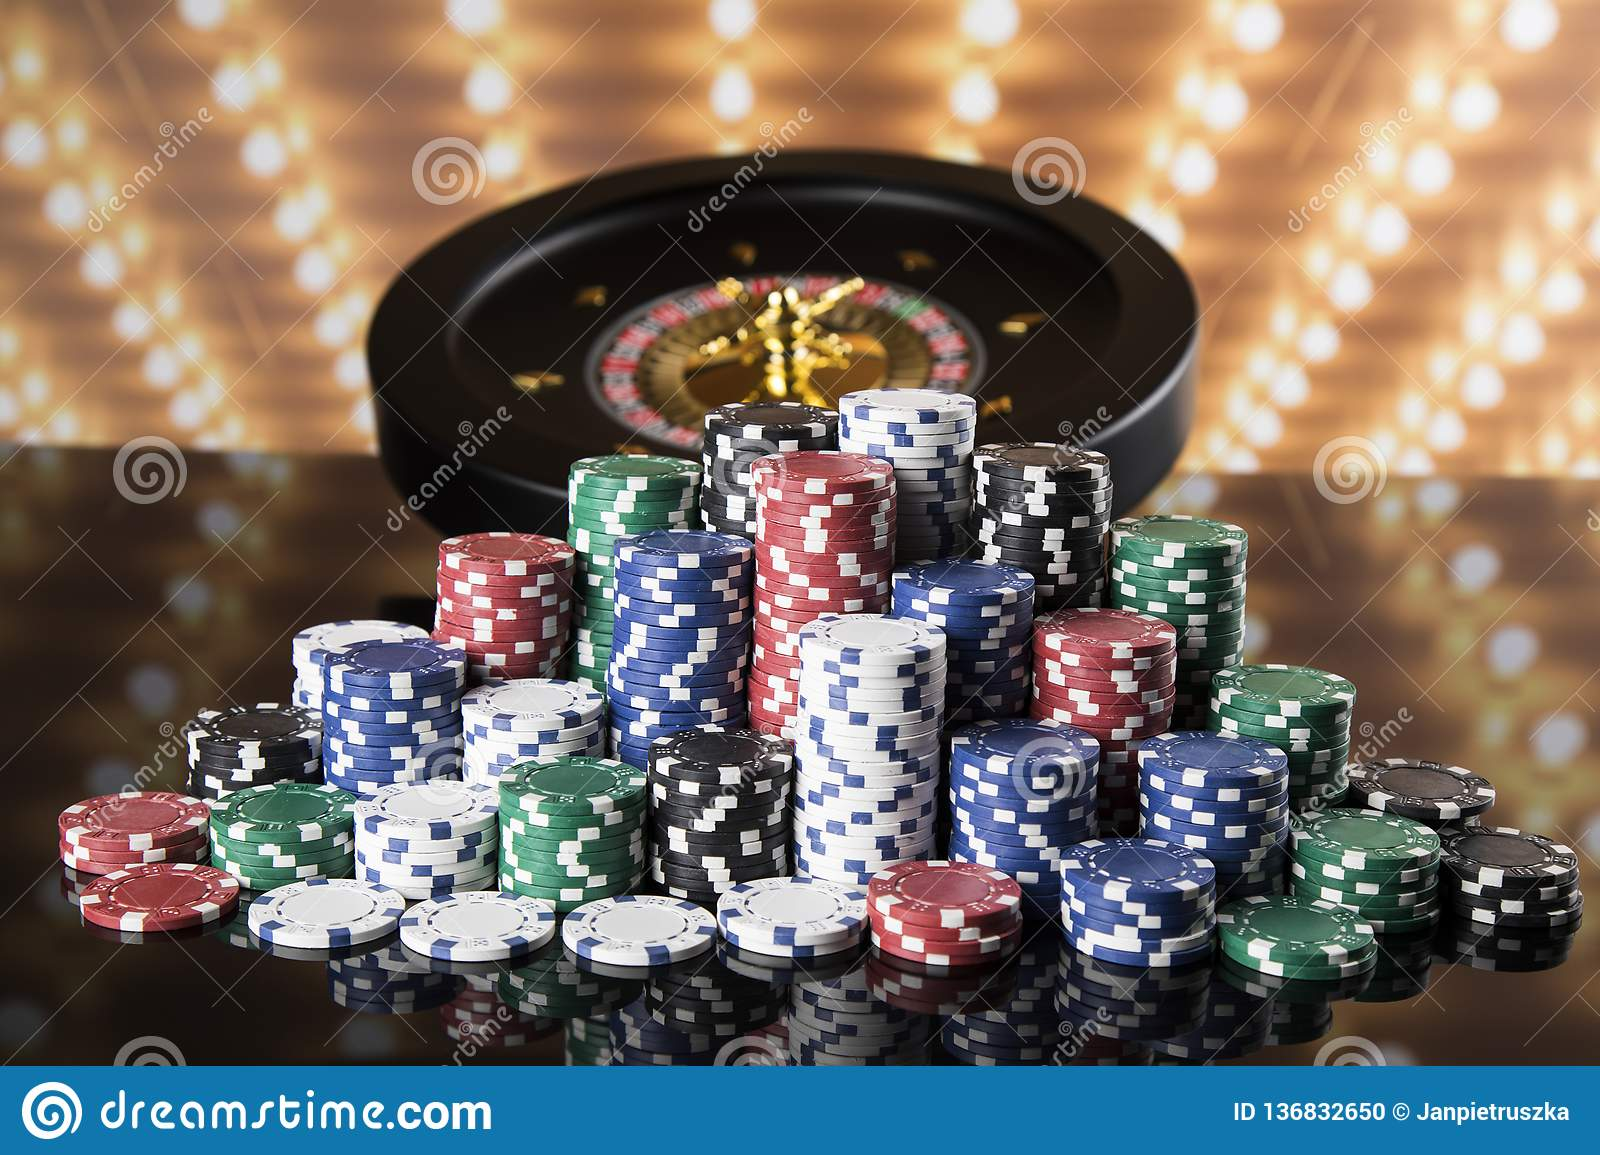 Poker Chips Roulette Wheel In Motion Casino Background Stock Photo Image Of Gamble Casino 136832650